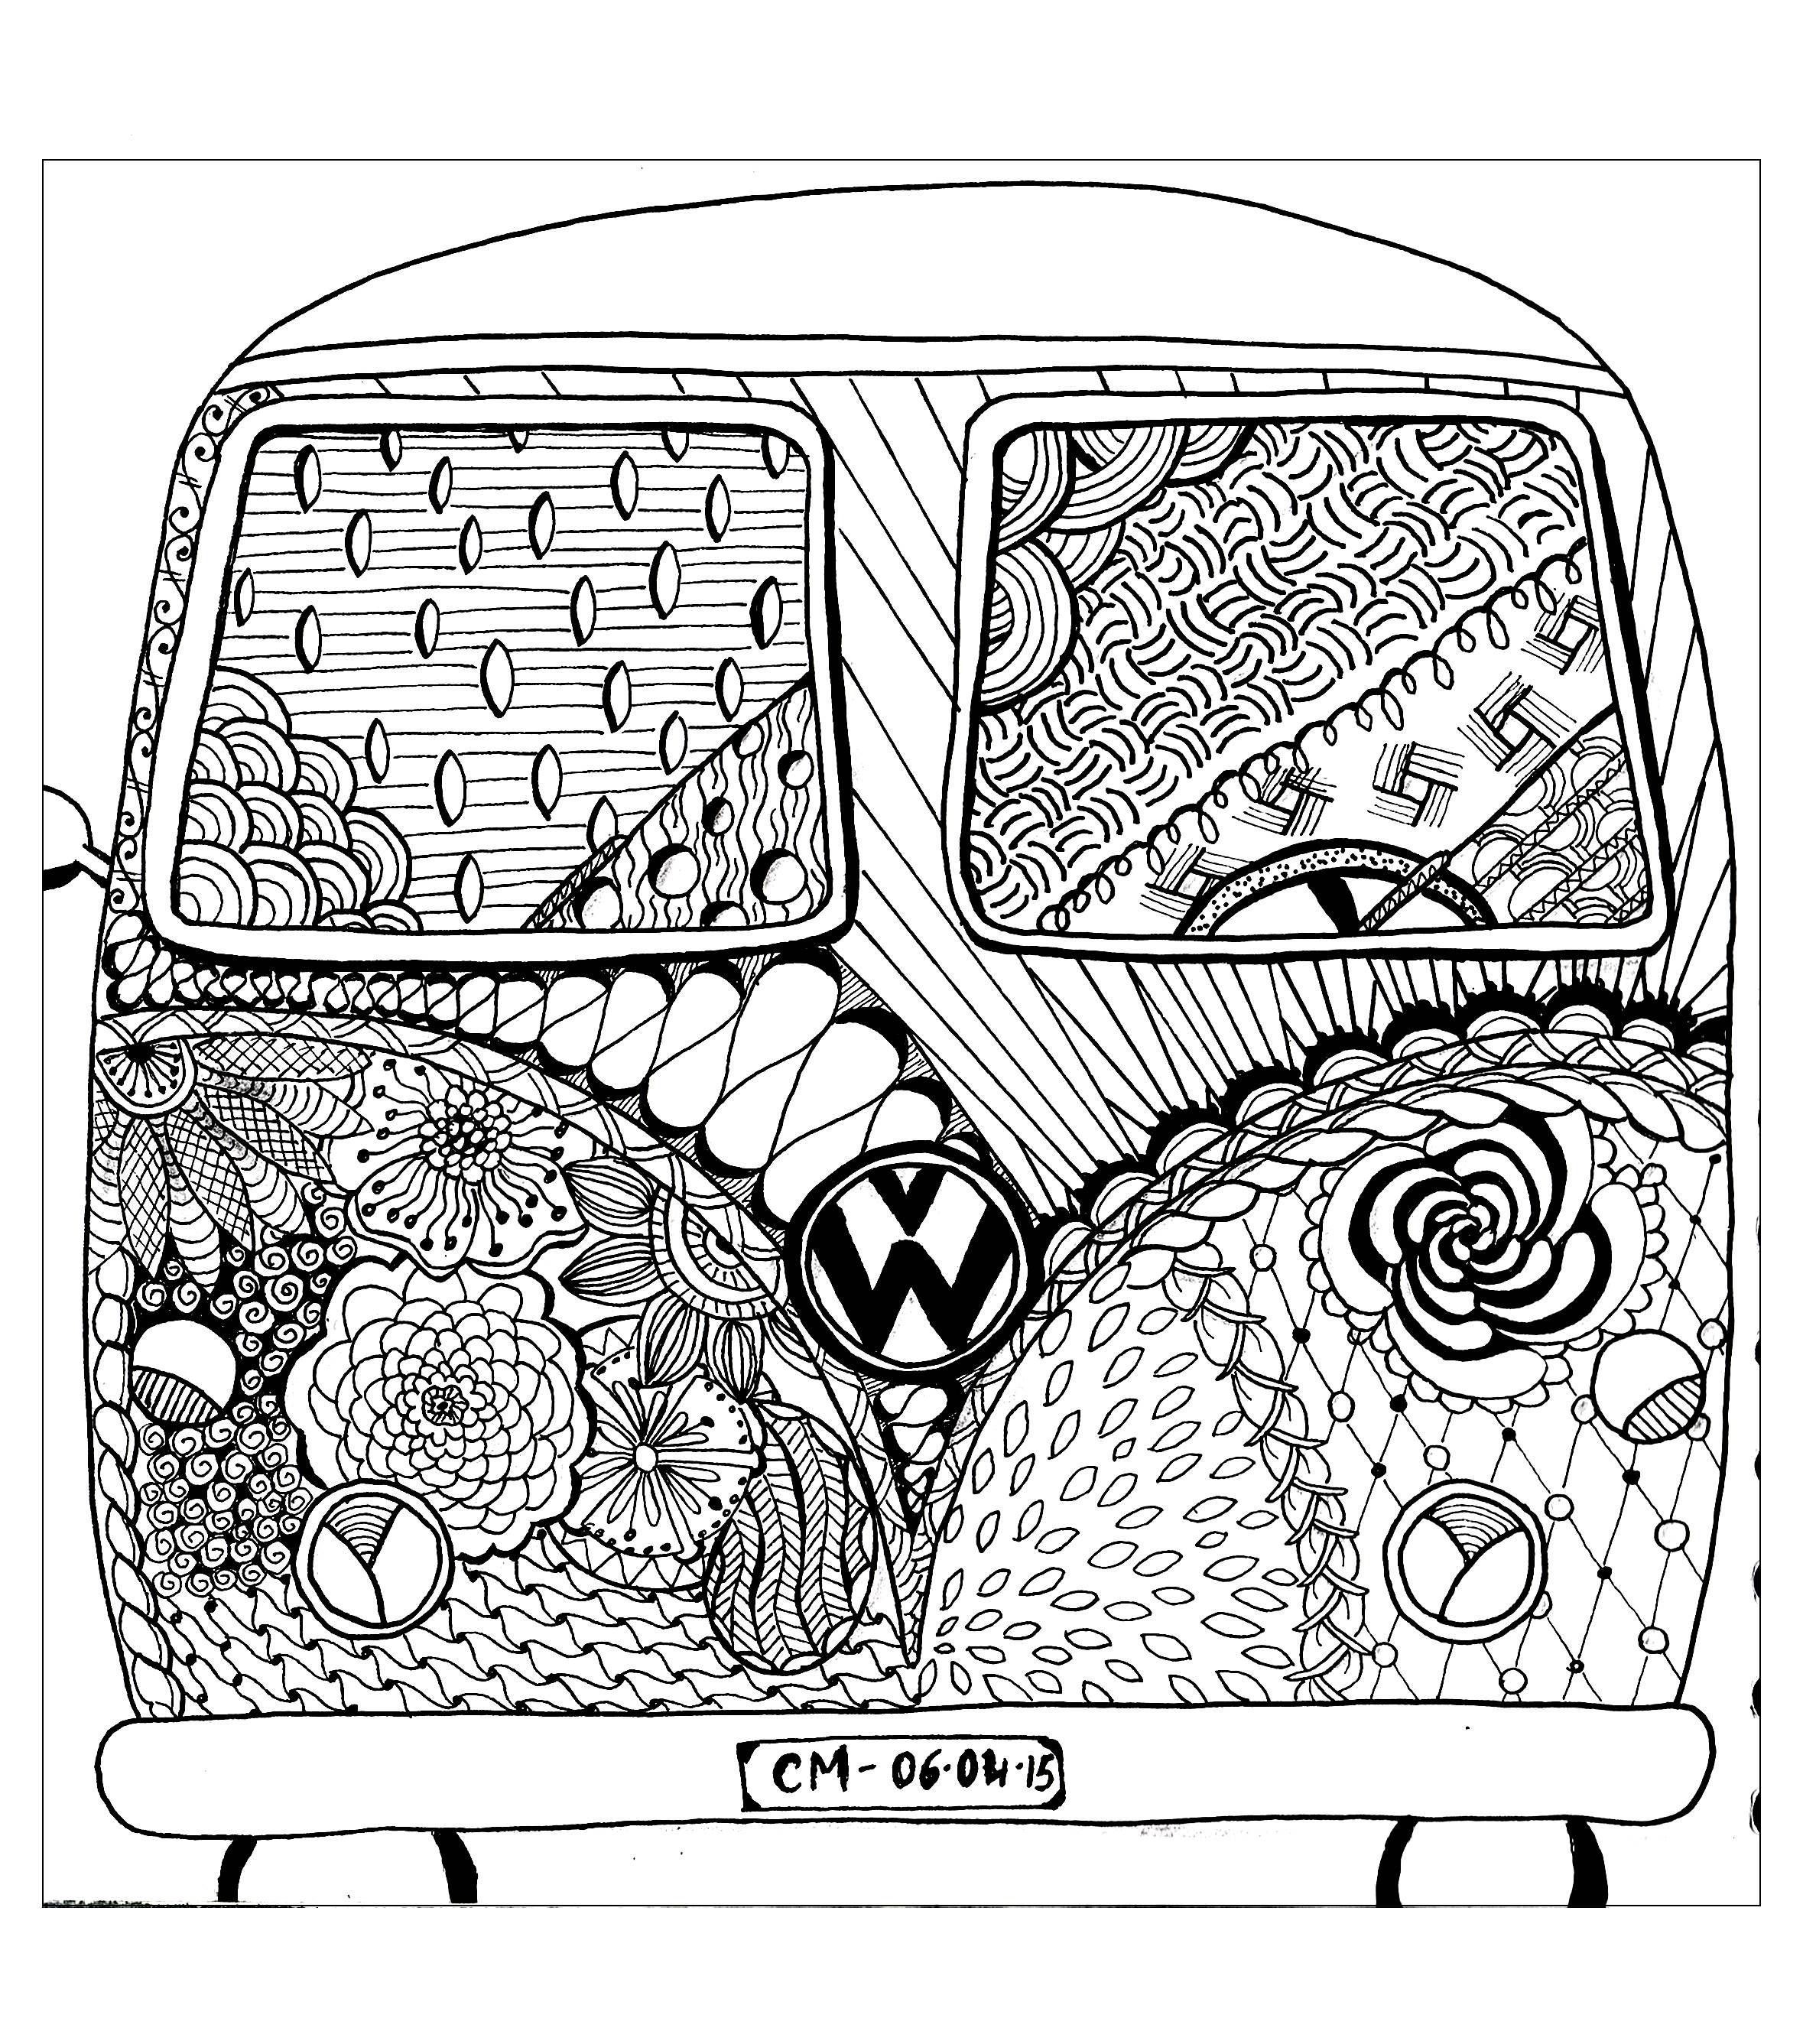 Coloring pages for adults zentangle - Free Coloring Page Coloring Zentangle By Cathym 8 Hippie Camper